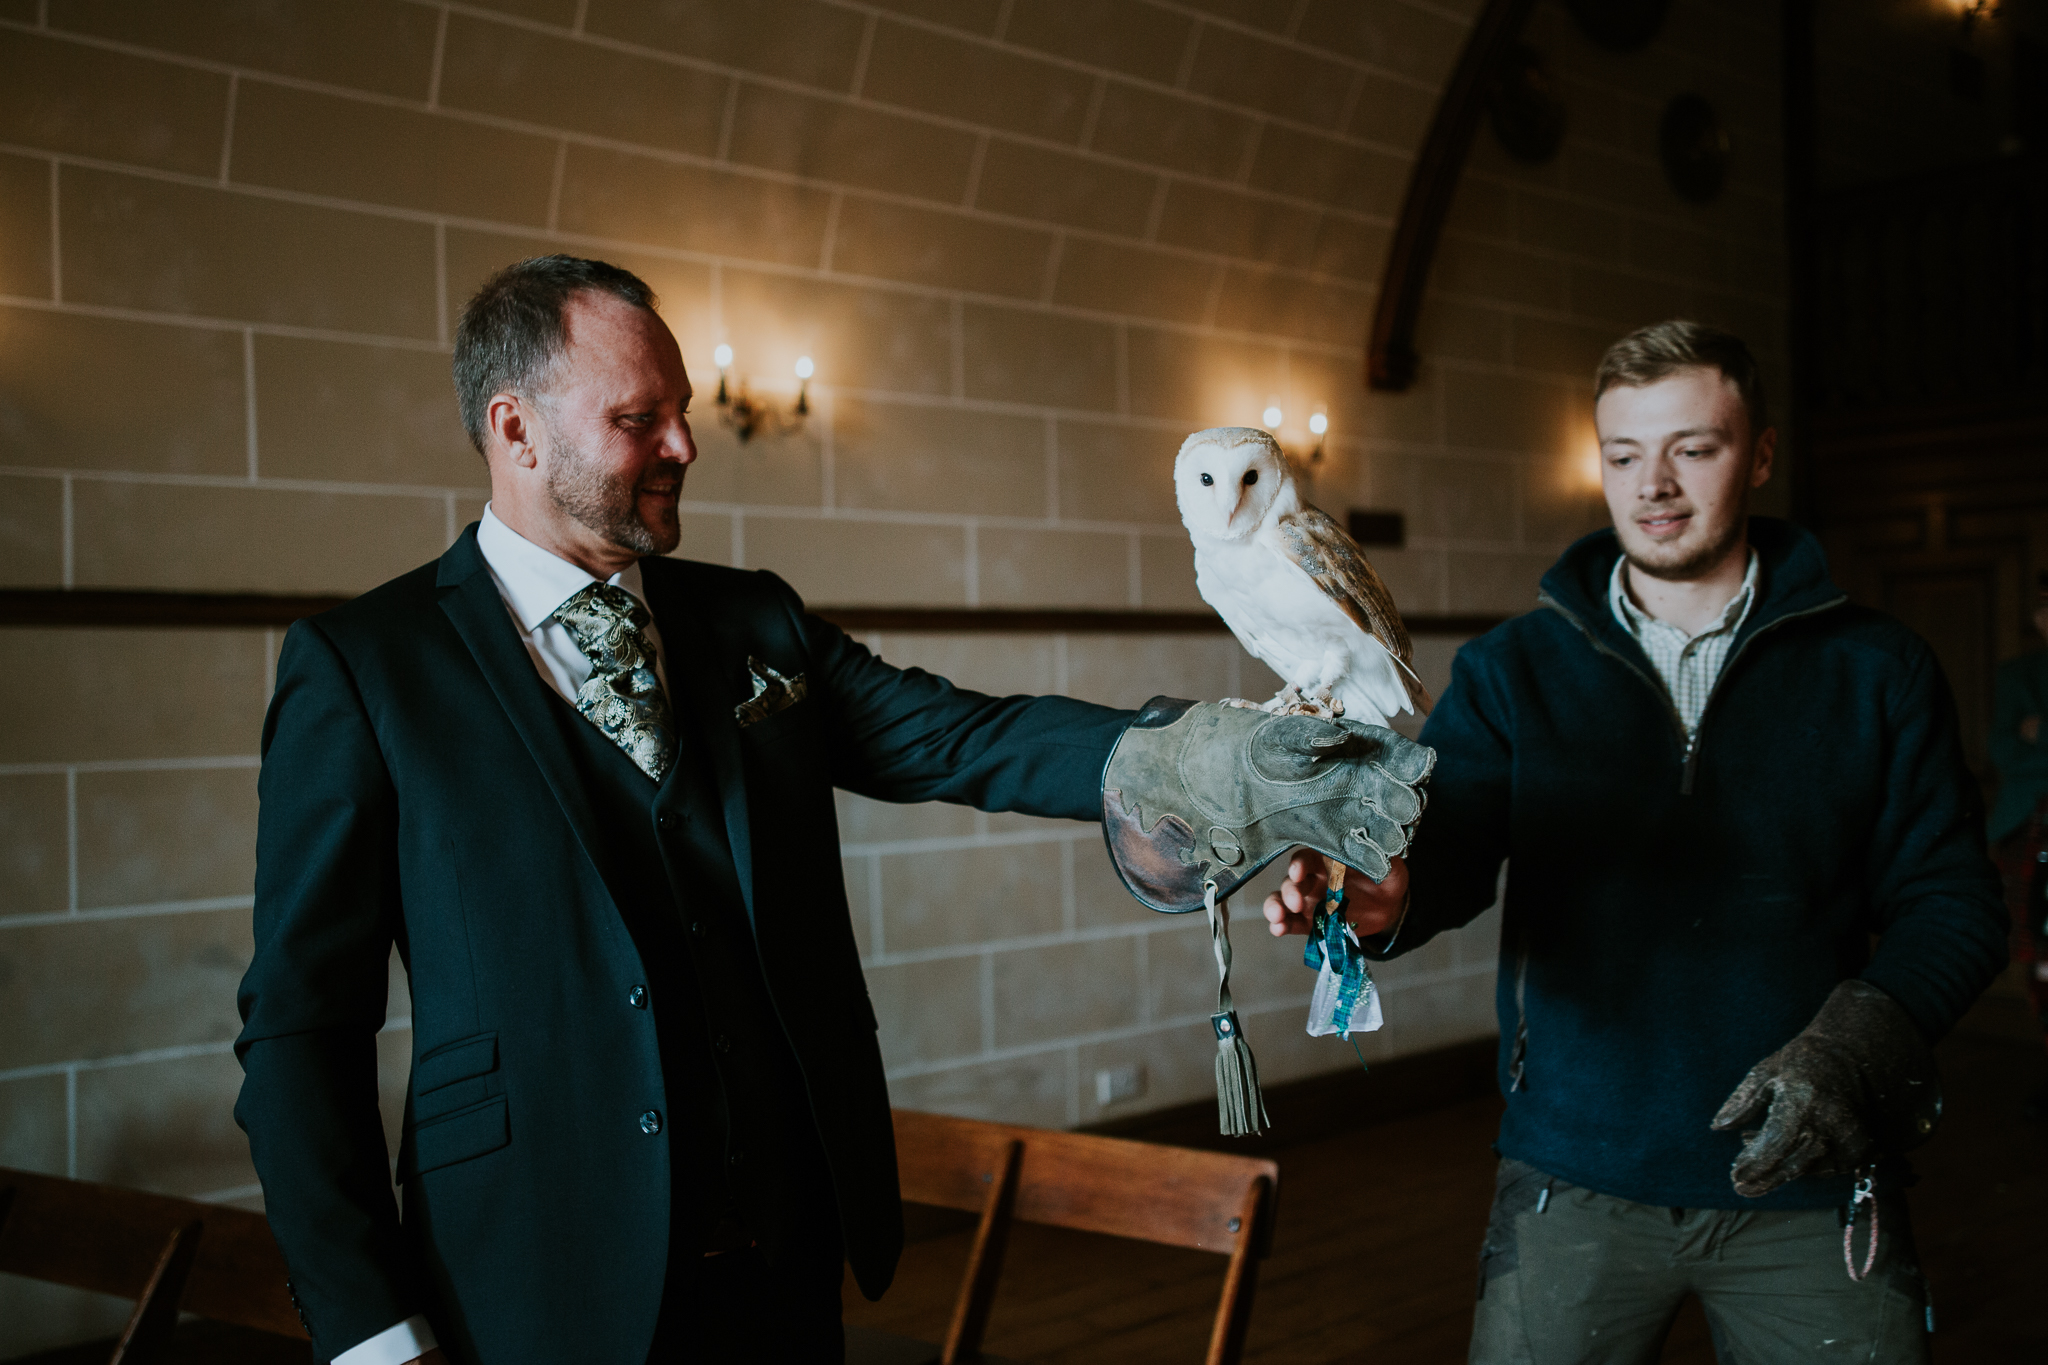 The owl is bringing the wedding rings.